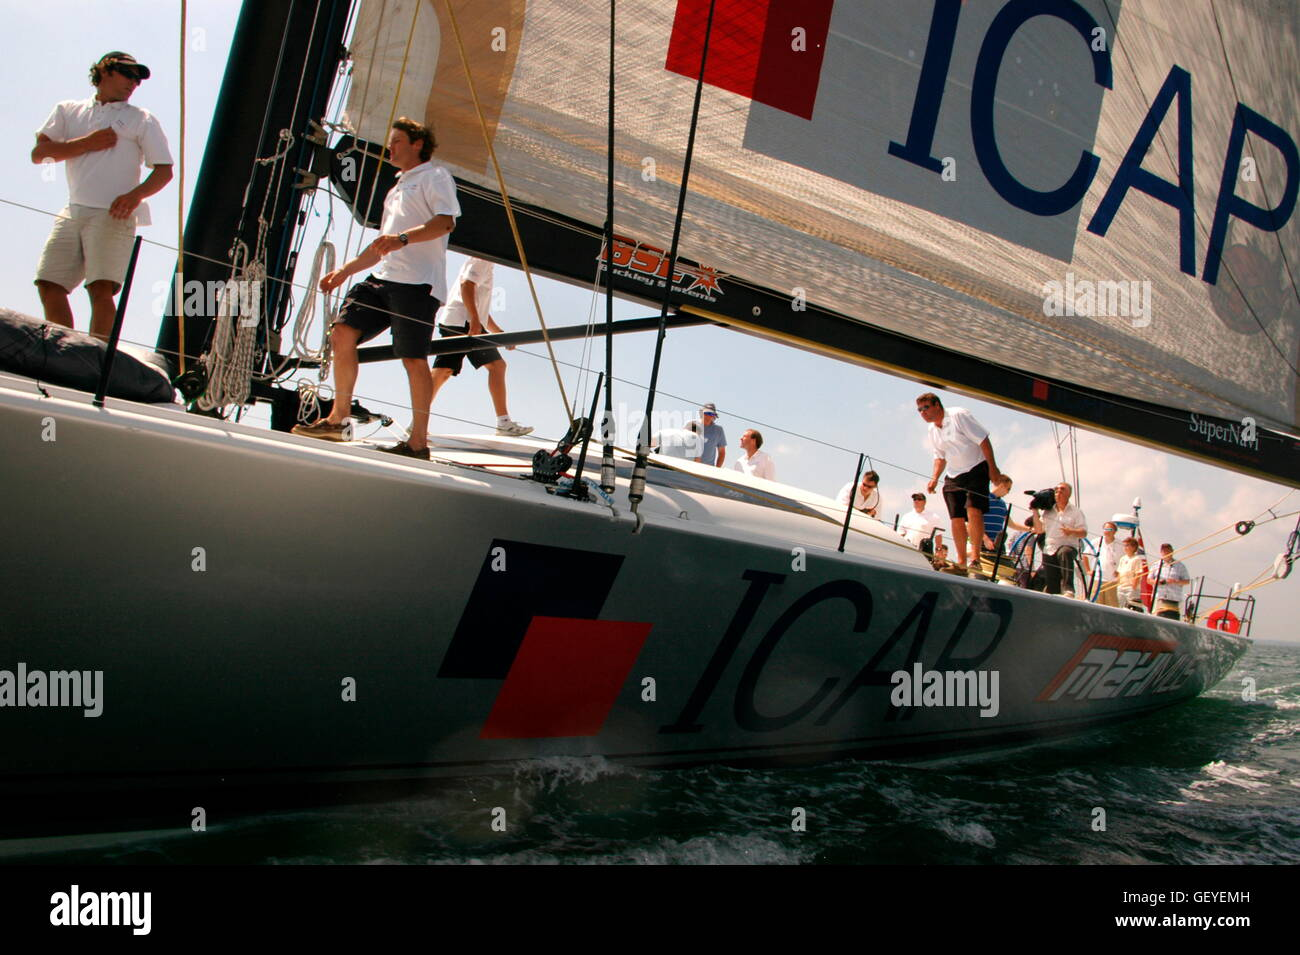 AJAX NEWS PHOTOS. 2005. SOLENT, ENGLAND. - 30M THOROUGHBRED RACER - ICAP-MAXIMUS (NZ) DESIGNED BY GREG ELLIOTT AIMS Stock Photo